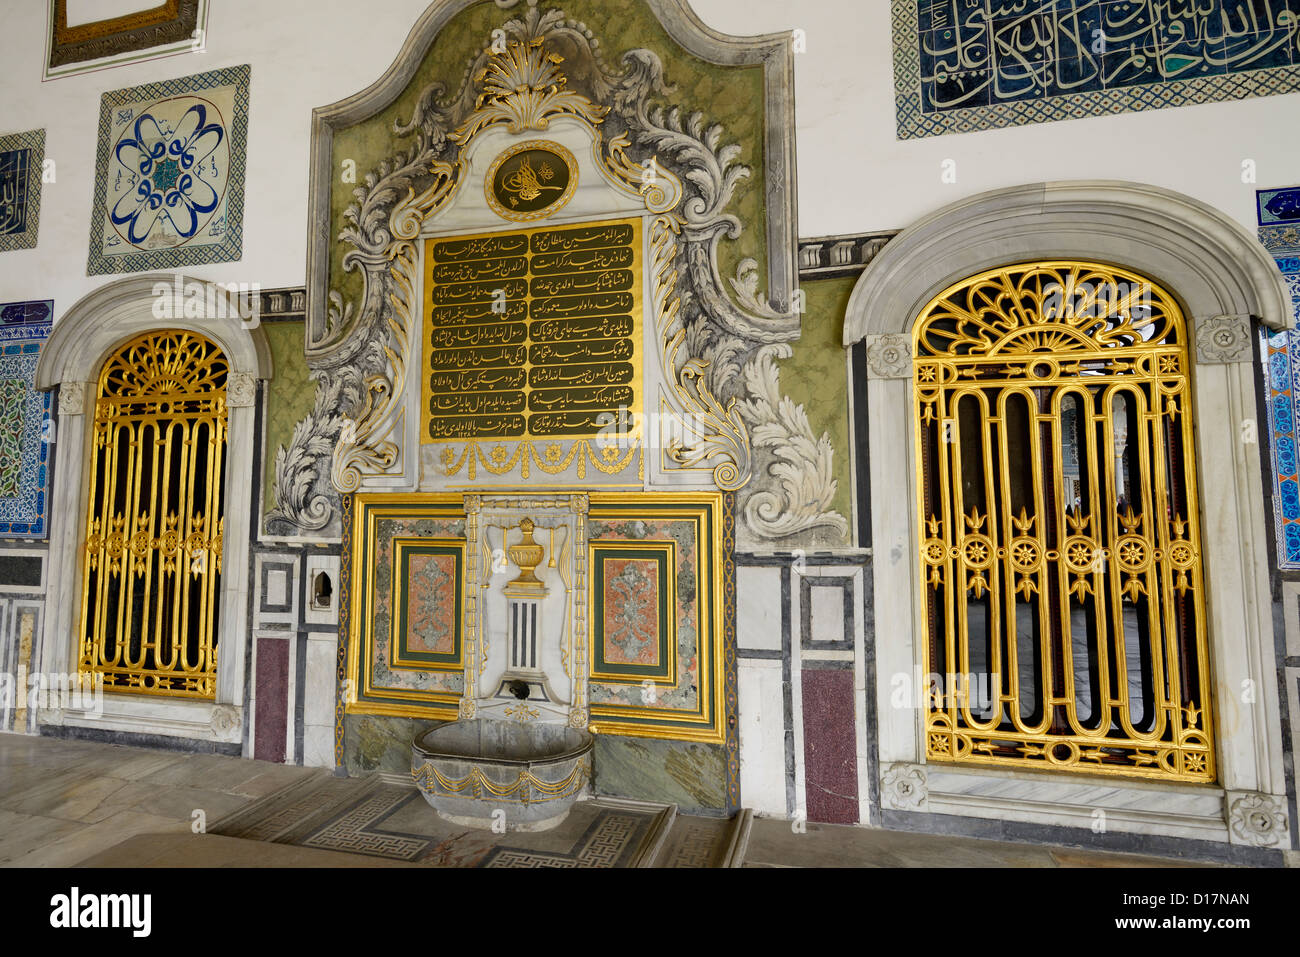 Gilded window and fountain outside the Pavilion of the Blessed Mantle Topkapi Palace Istanbul Turkey - Stock Image